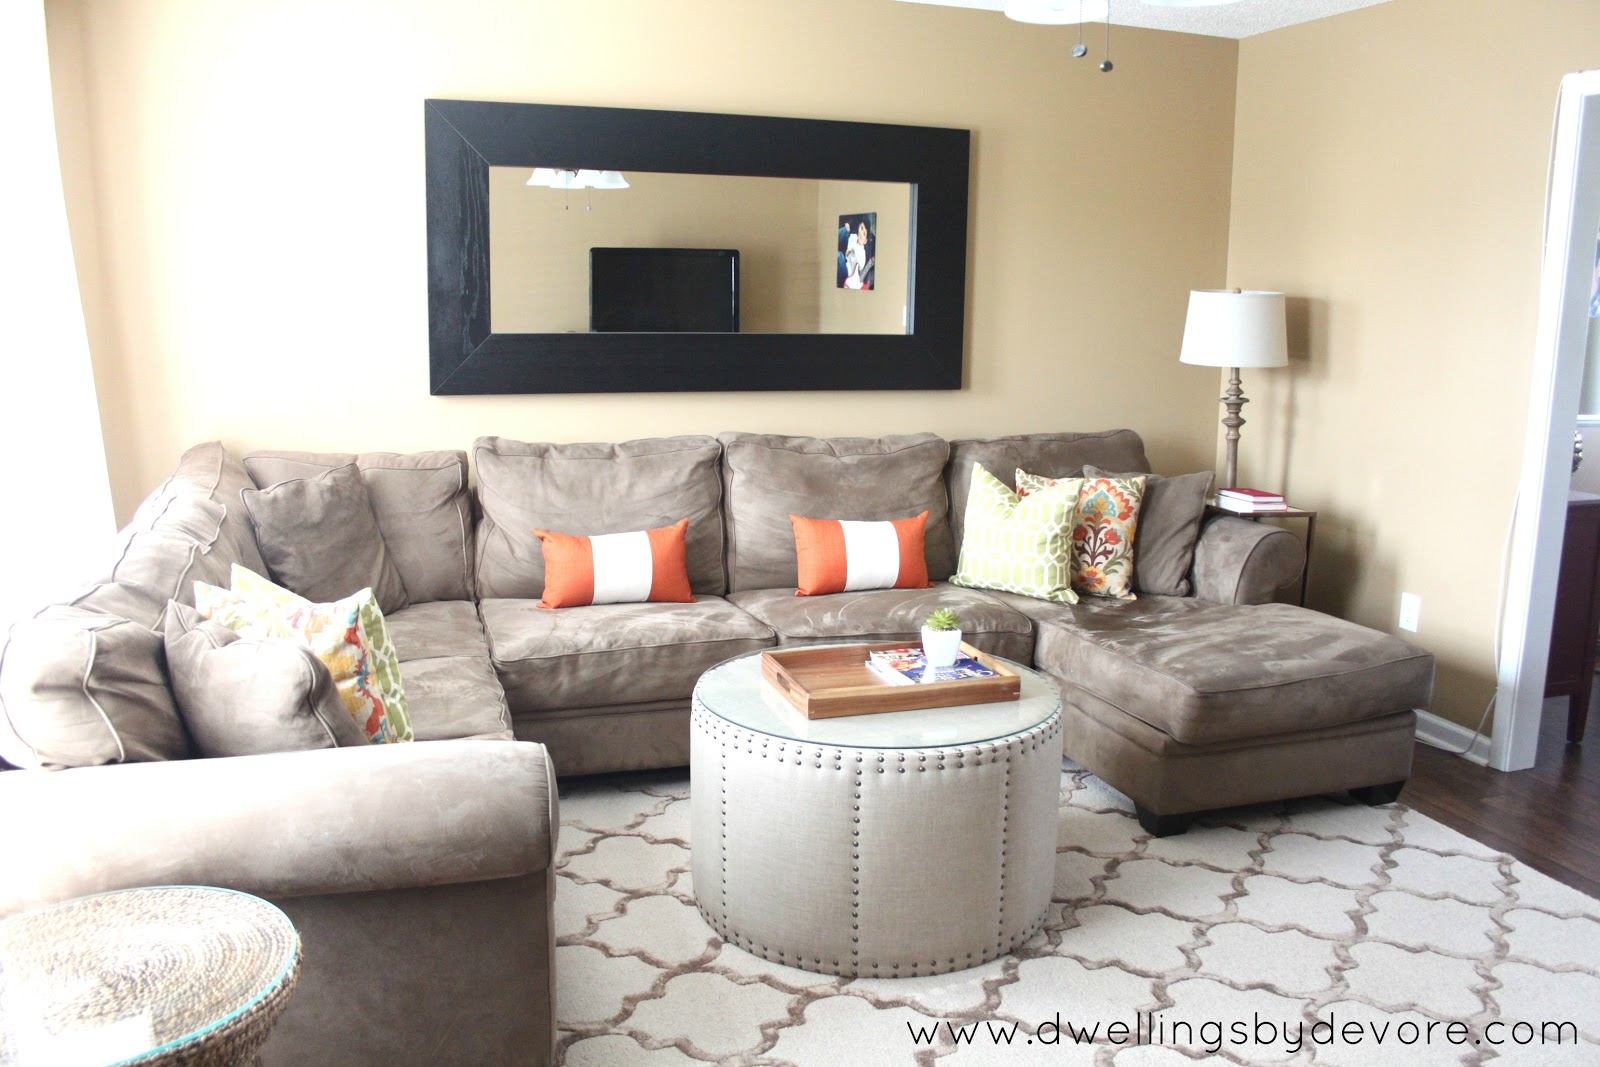 Large Sectional Sofa In Small Living Room Eurway Sleeper Dwellings By Devore Client Redesign